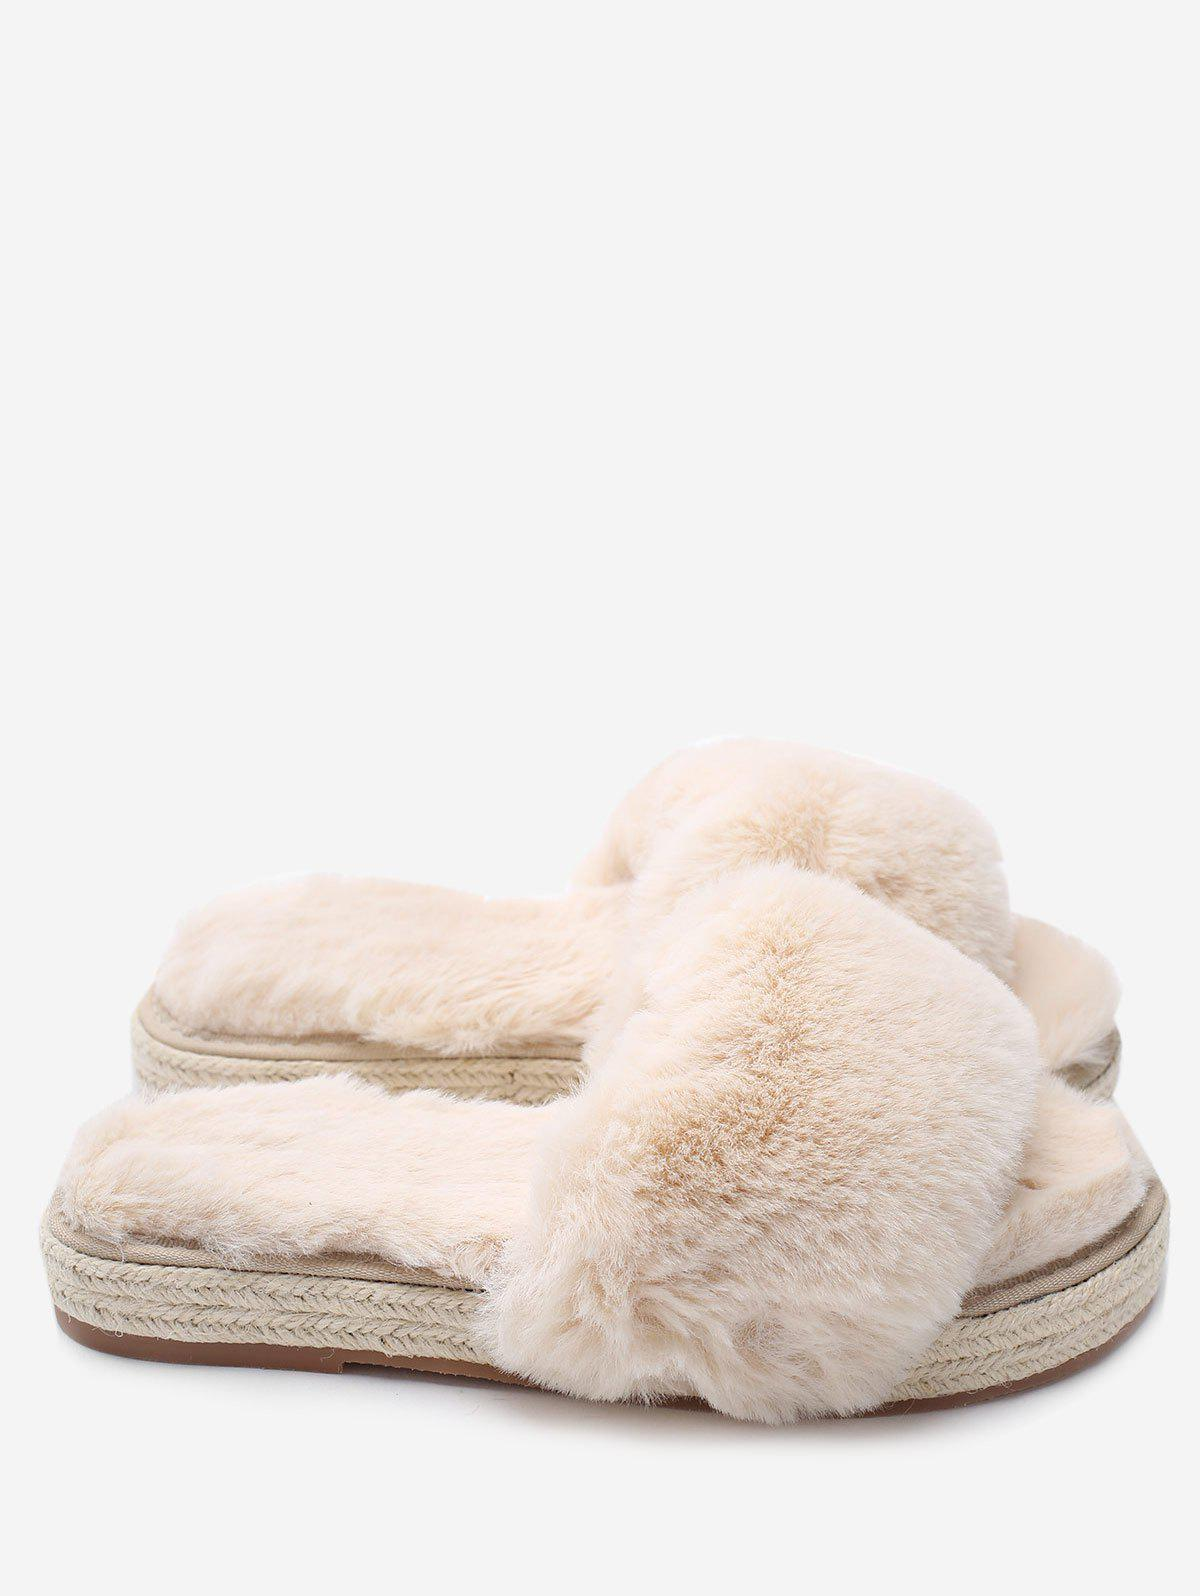 Espadrille Sole Faux Fur Slippers - APRICOT 36